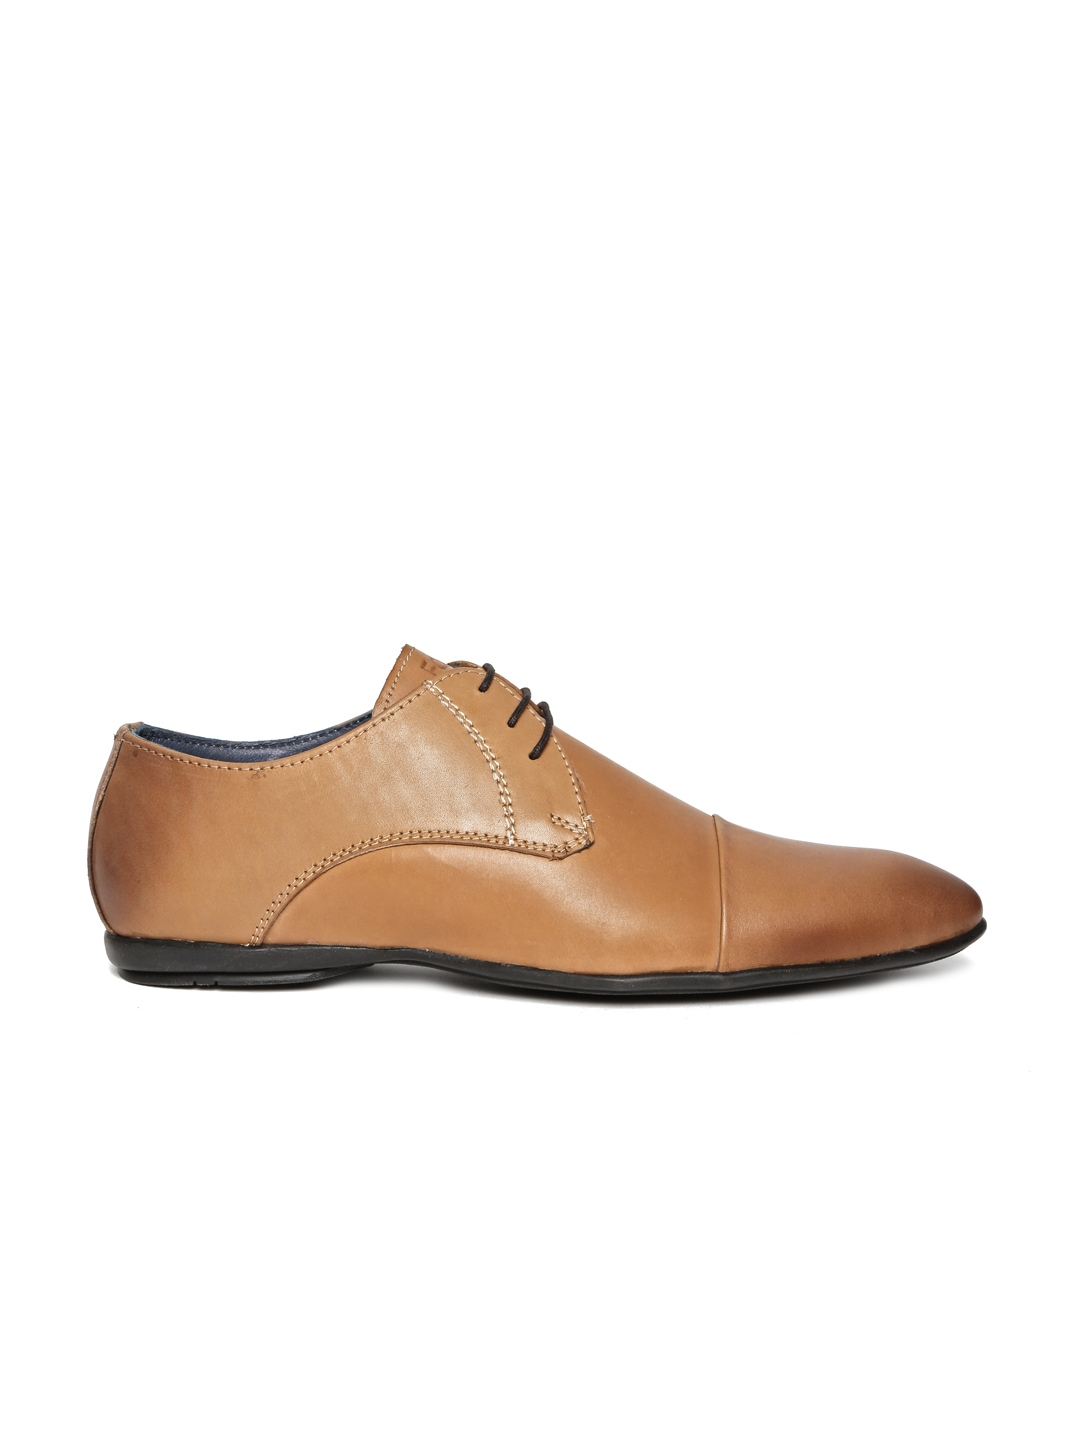 Famozi Men S Leather Formal Shoes